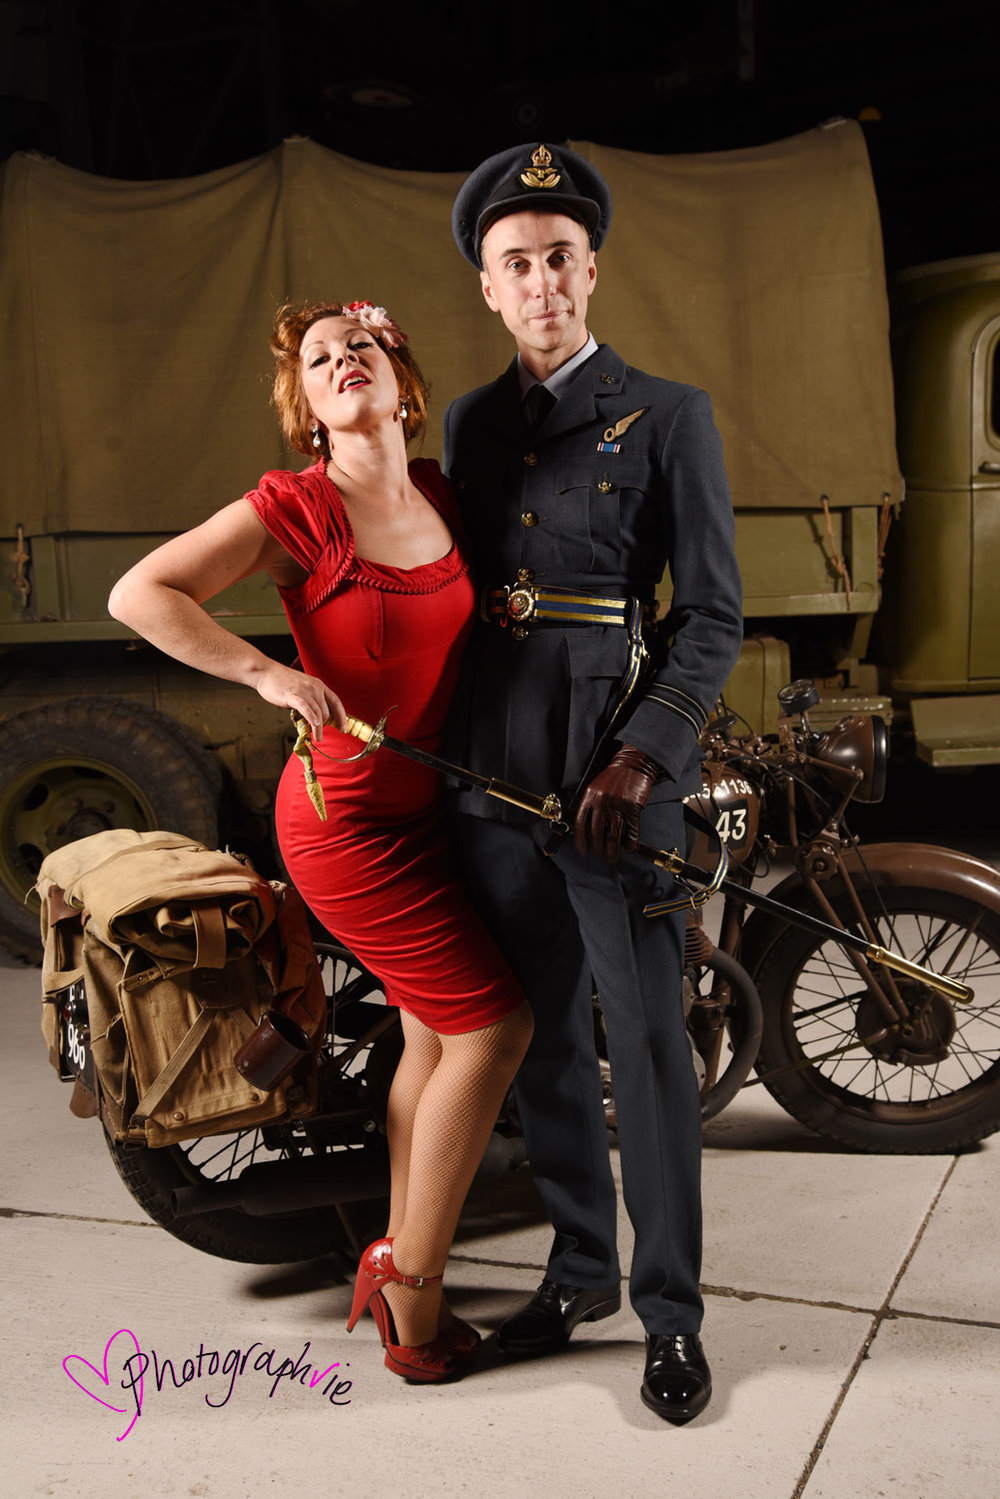 Imperial-War-Museum-House-of-Cambridge-Event-40s-Dressing-Up-Pin-up-Photobooth-and-Photos-by-Photographvie-Ely--(30).jpg